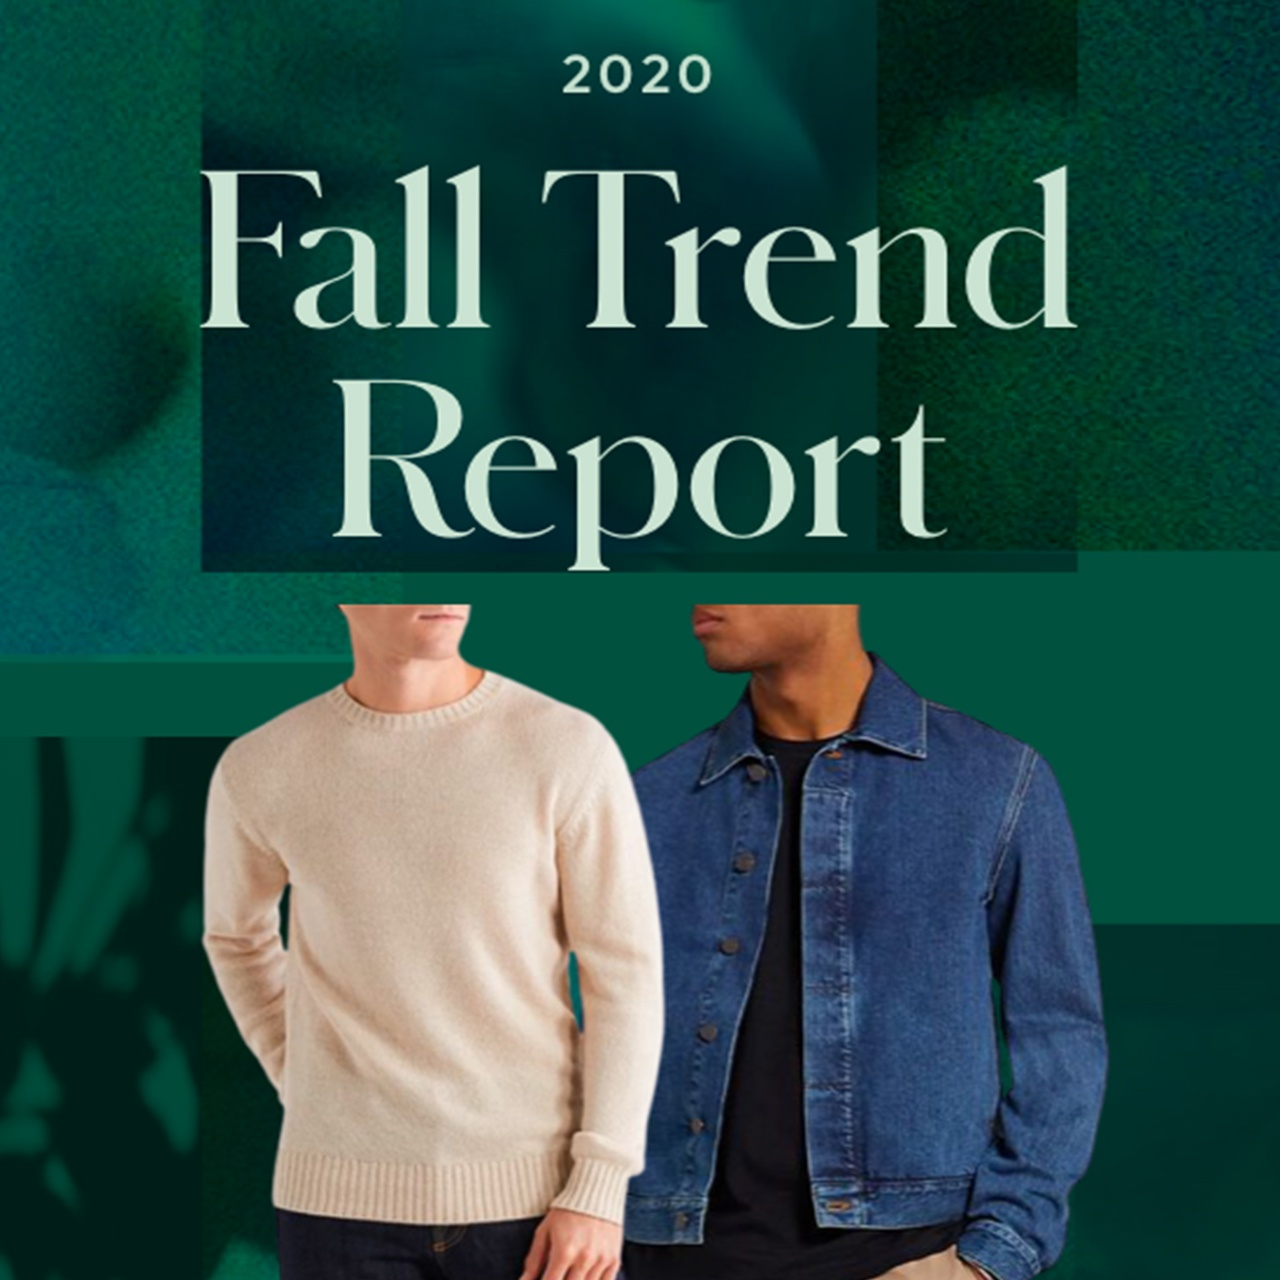 Fall Trend Report 2020